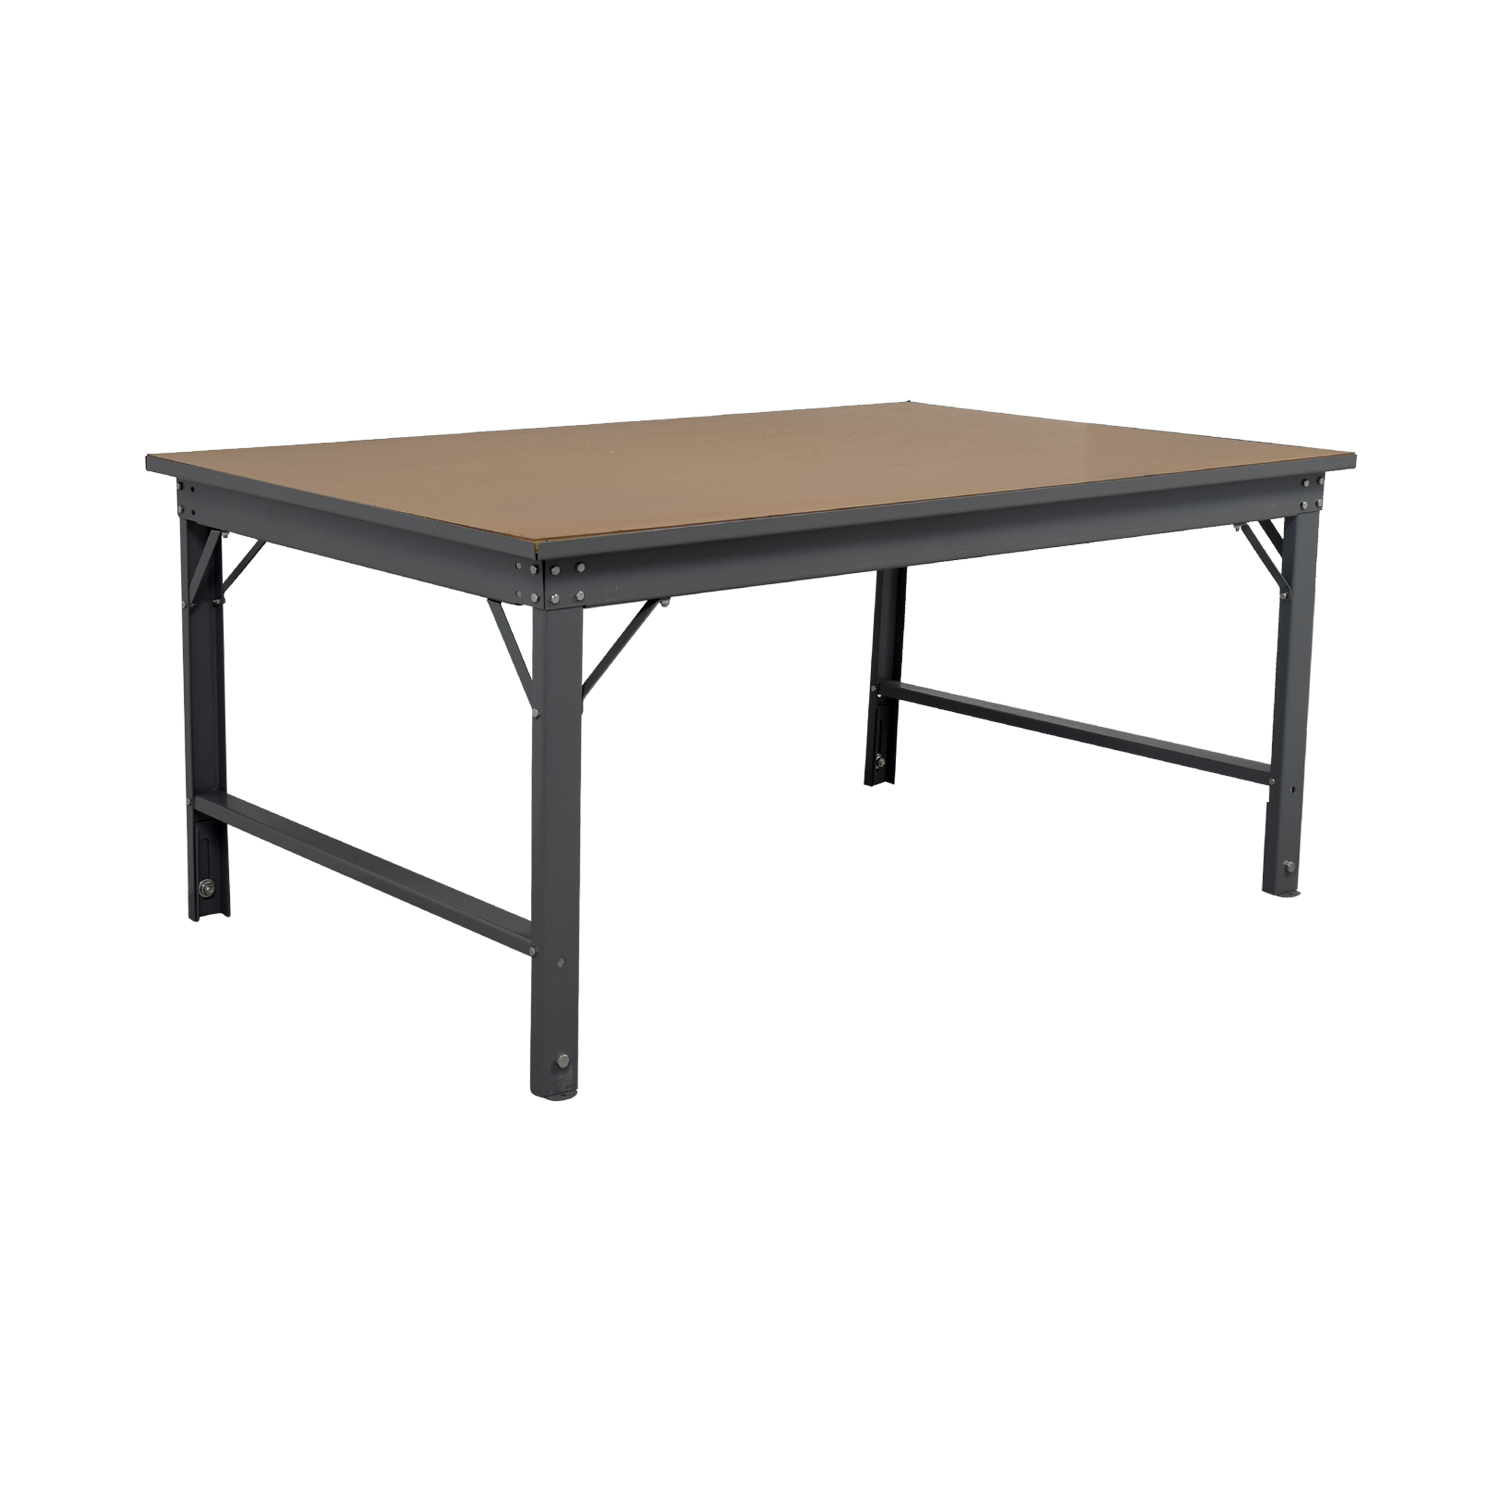 ... Southstar Supply Southstar Supply Industrial Tan Workshop Table Coupon  ...